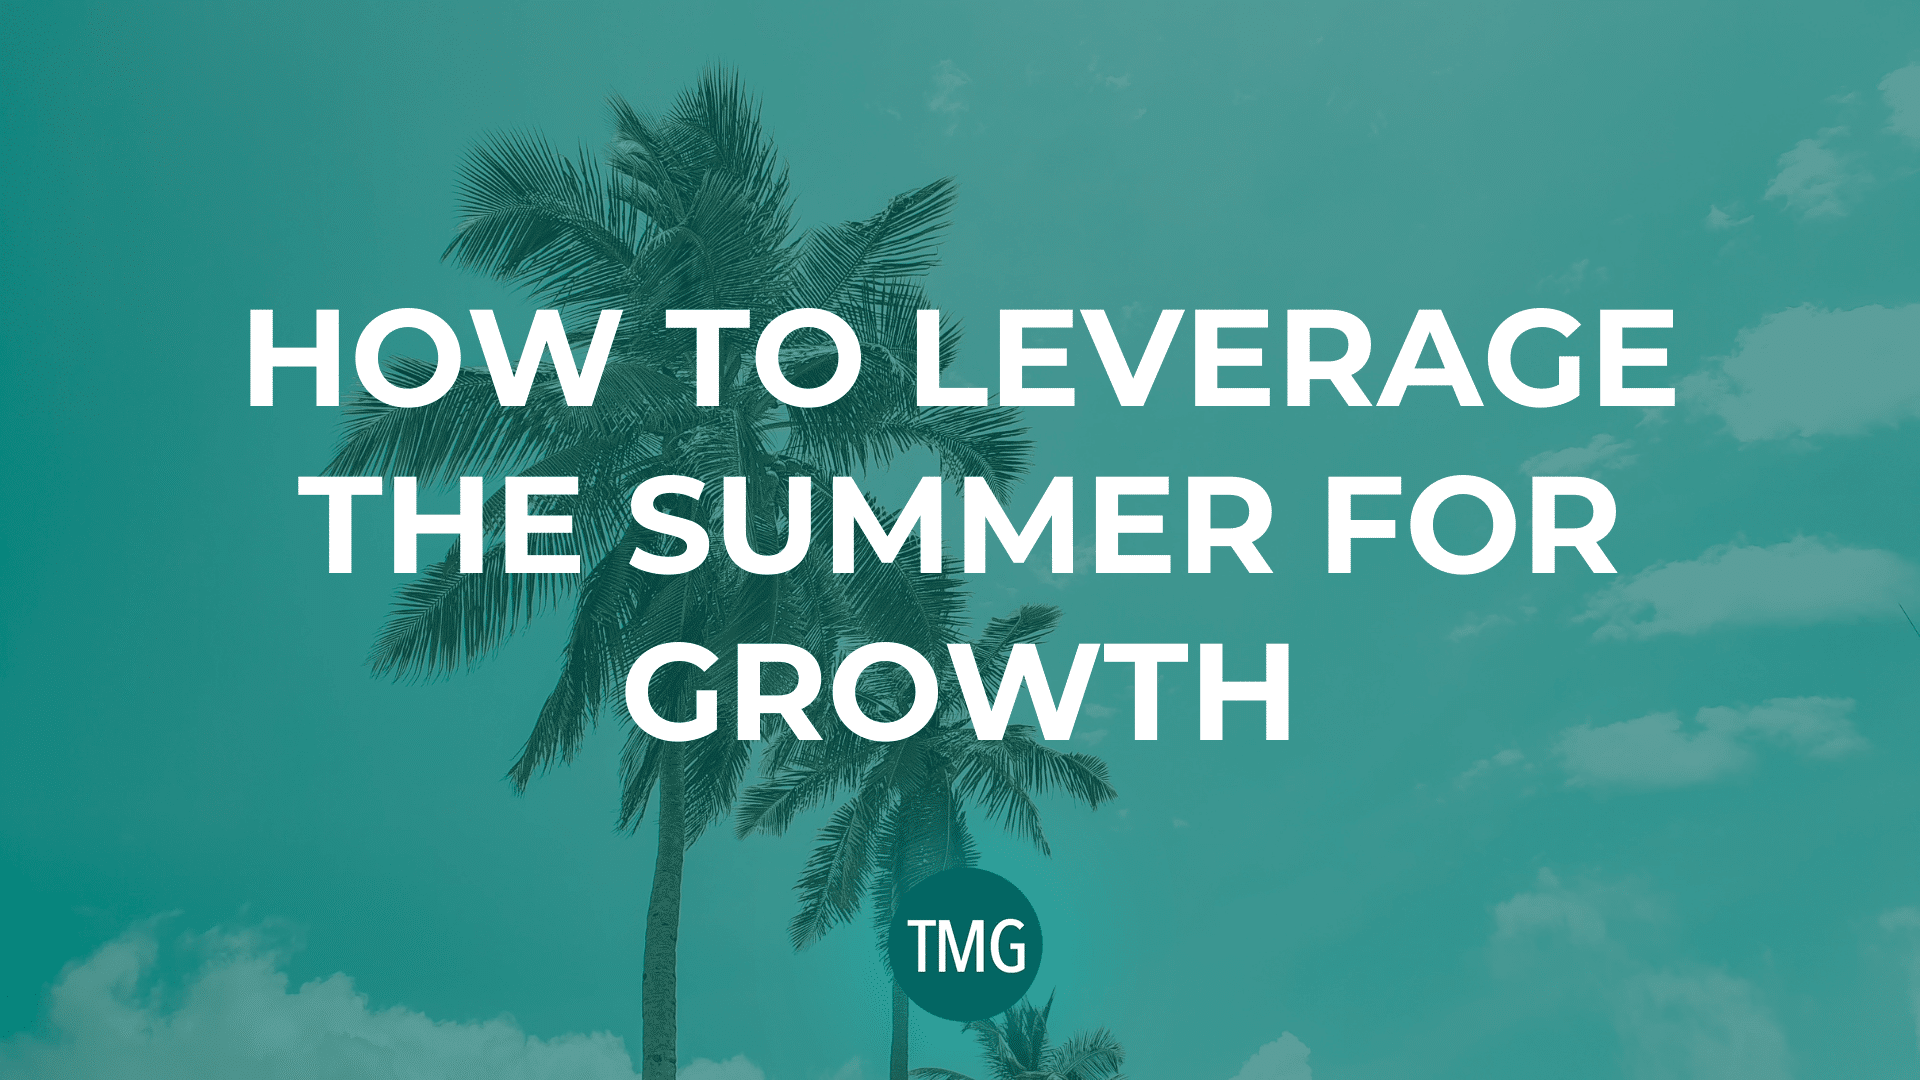 how-to-leverage-the-summer-for-growth_the-malphurs-group_church-revitalization-podcast